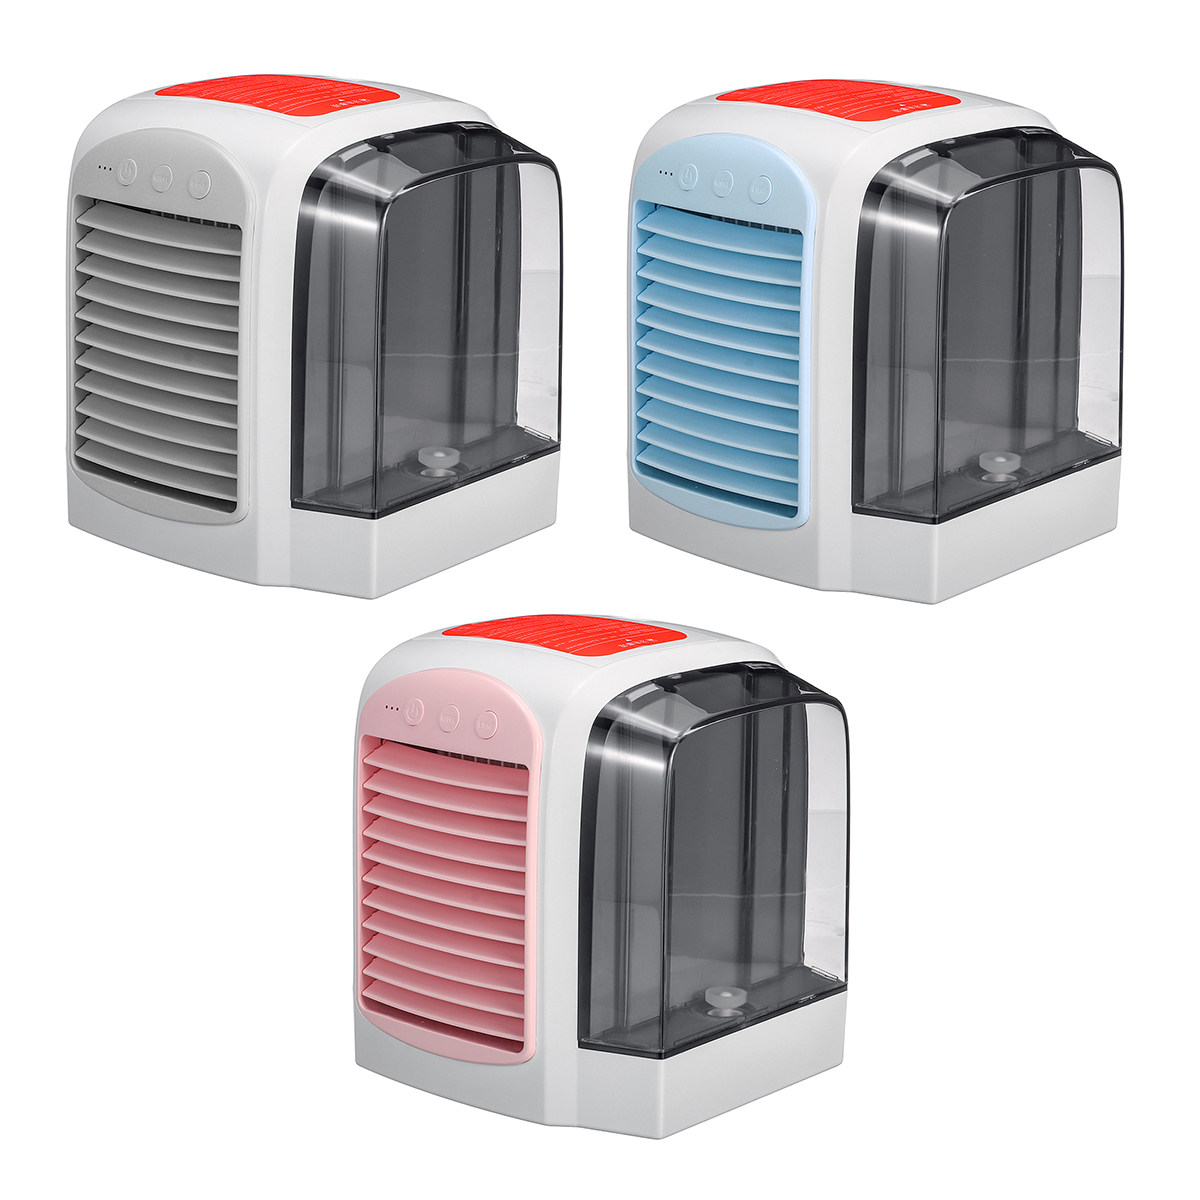 DC5V 380ml Air Conditioner Fan Mini Cool Bedr